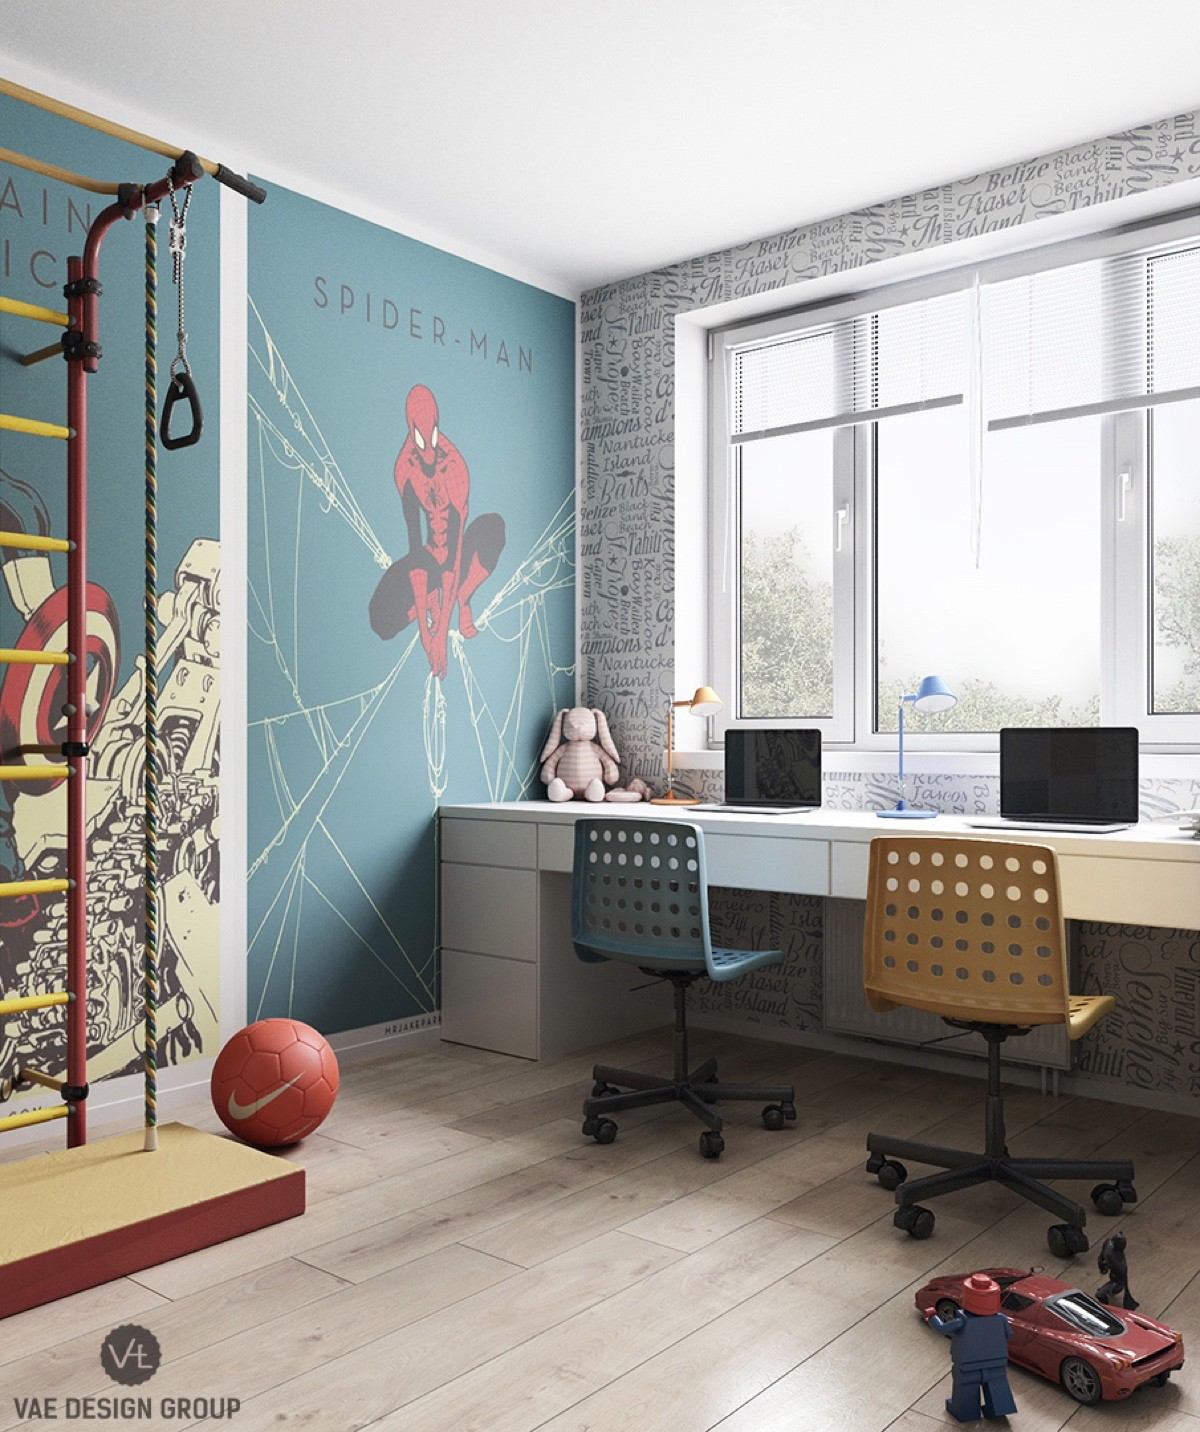 spiderman-workstation-lego-themed-chairs-funky-workspace